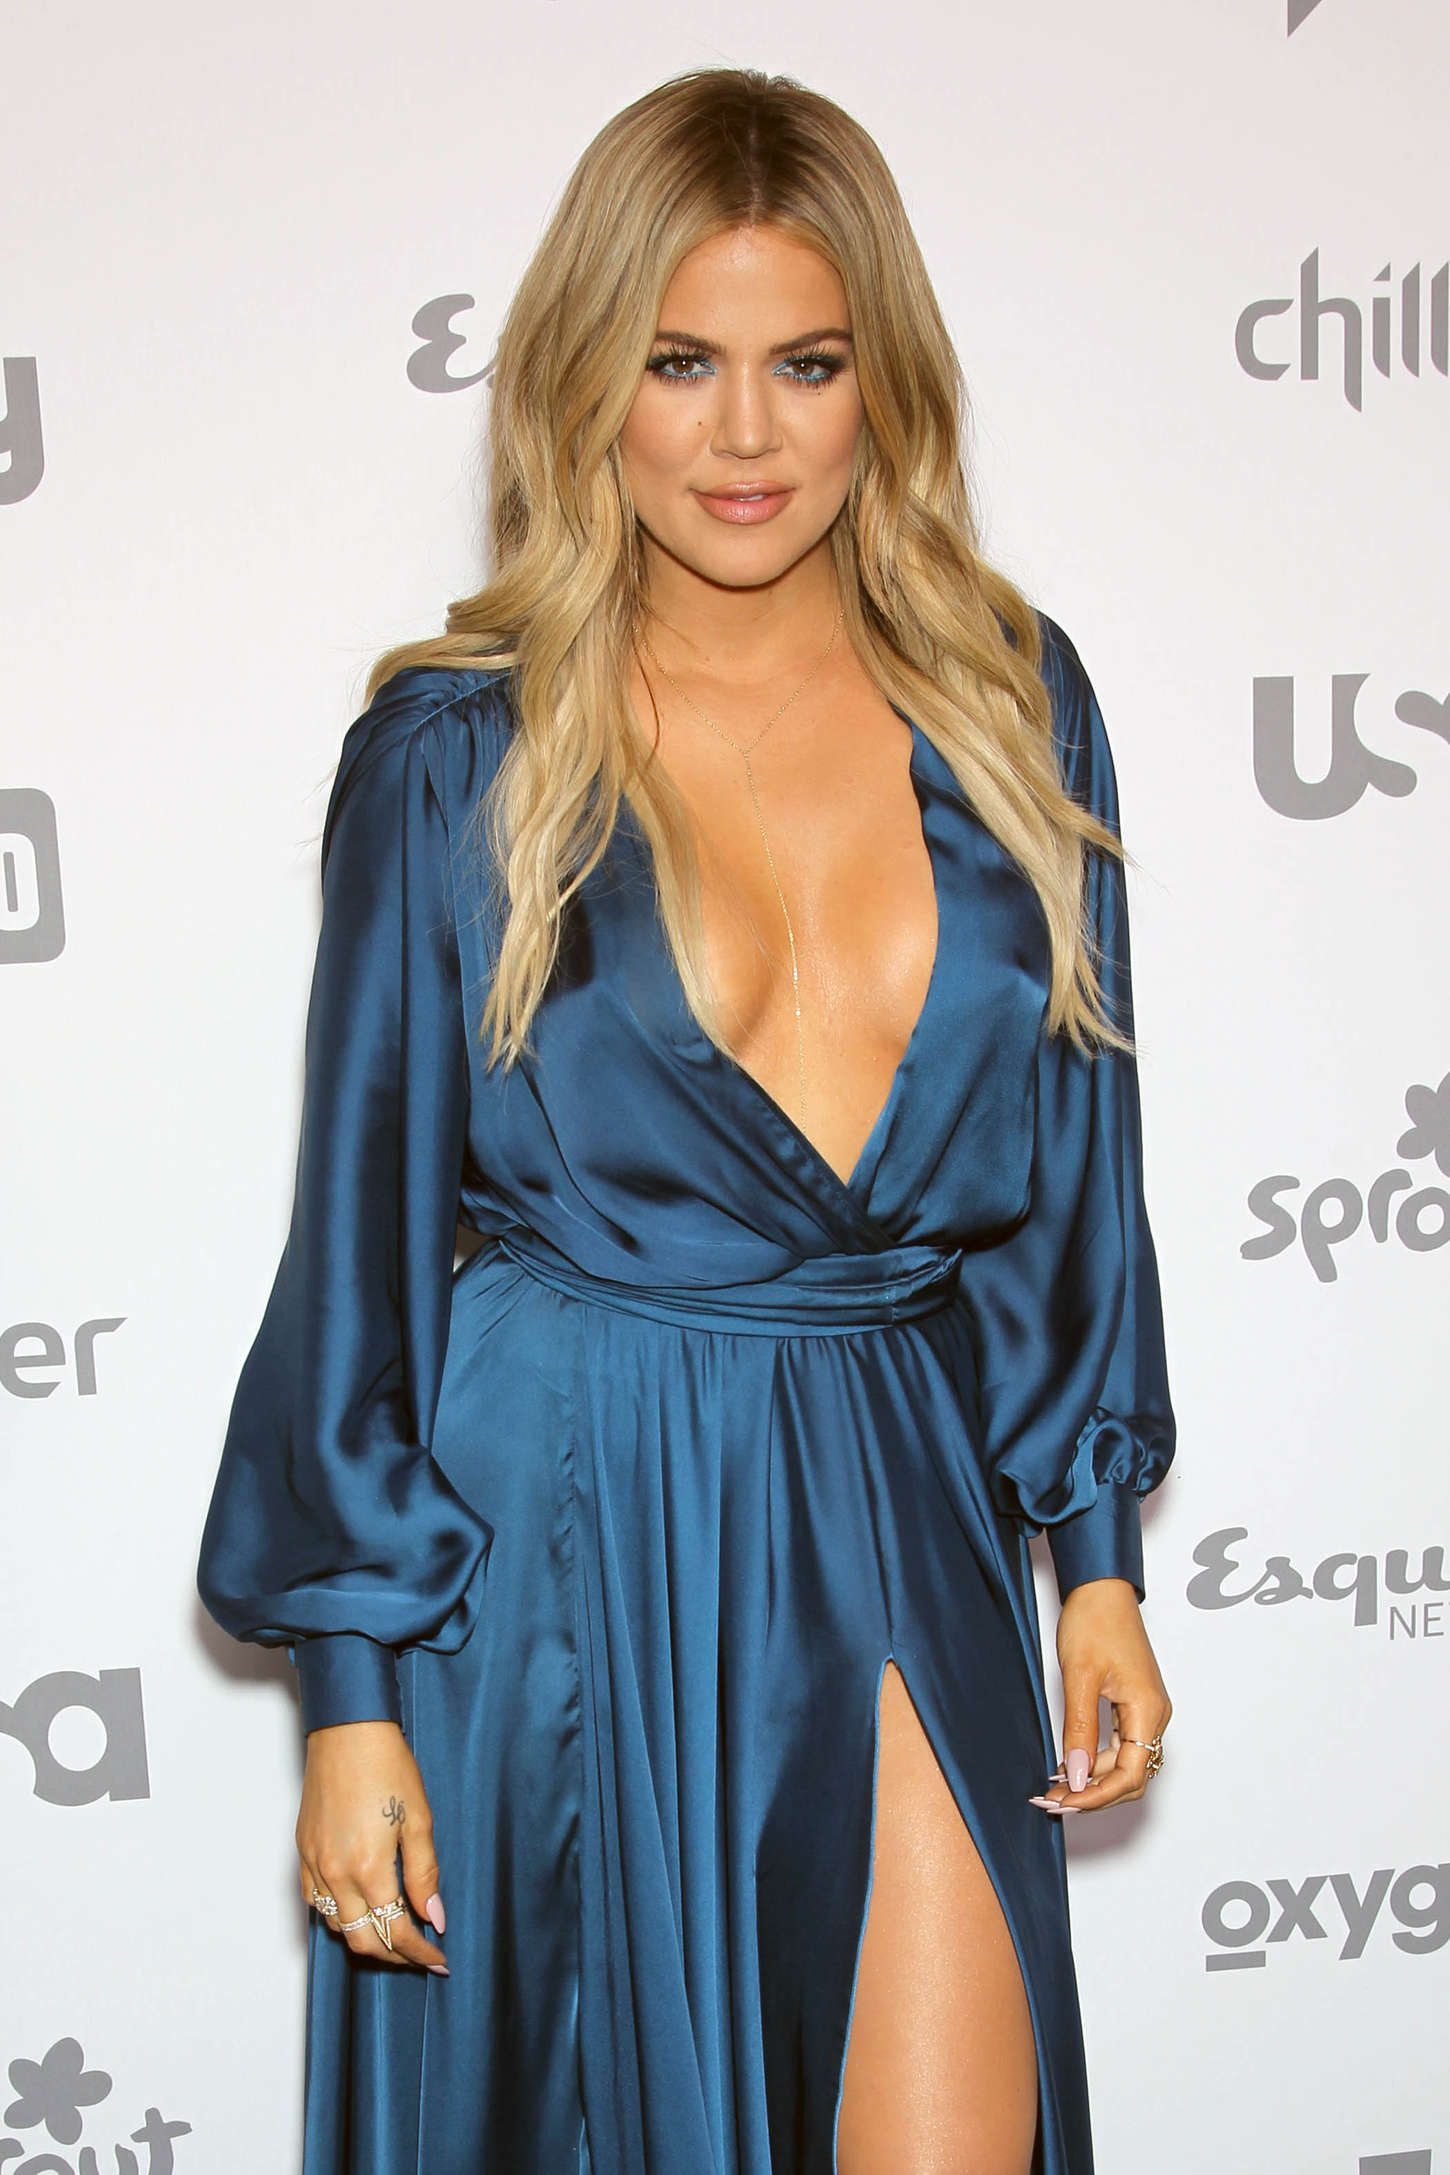 Khloe Kardashian - 2015 NBCUniversal Cable Entertainment Upfront in NYC